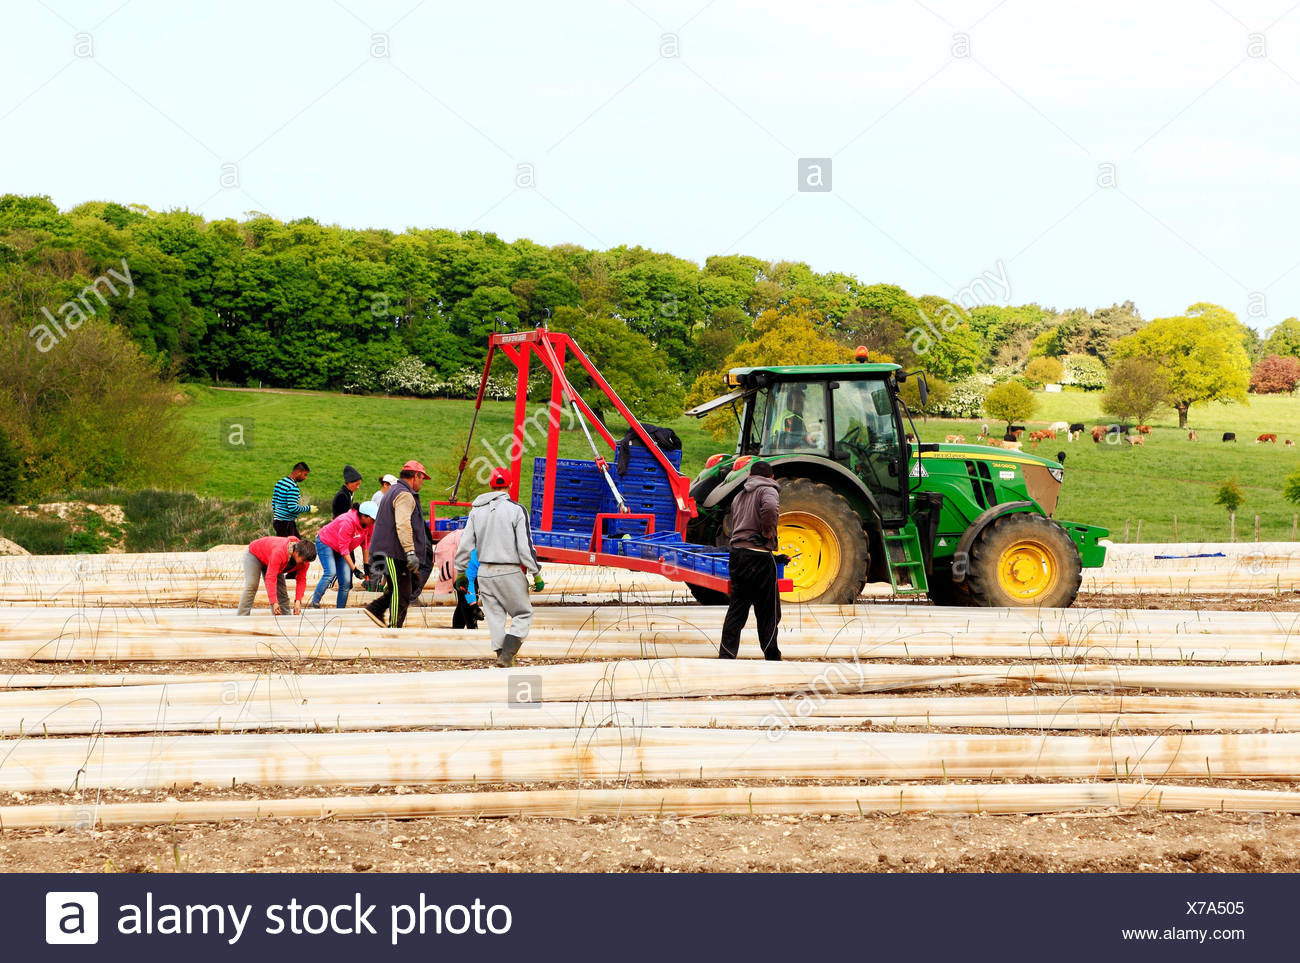 Immigrant casual agricultural labourers, workers, from Romania, Bulgaria, removing polythene tunnels, asparagus crop field, Norfolk, England, UK - Stock Image